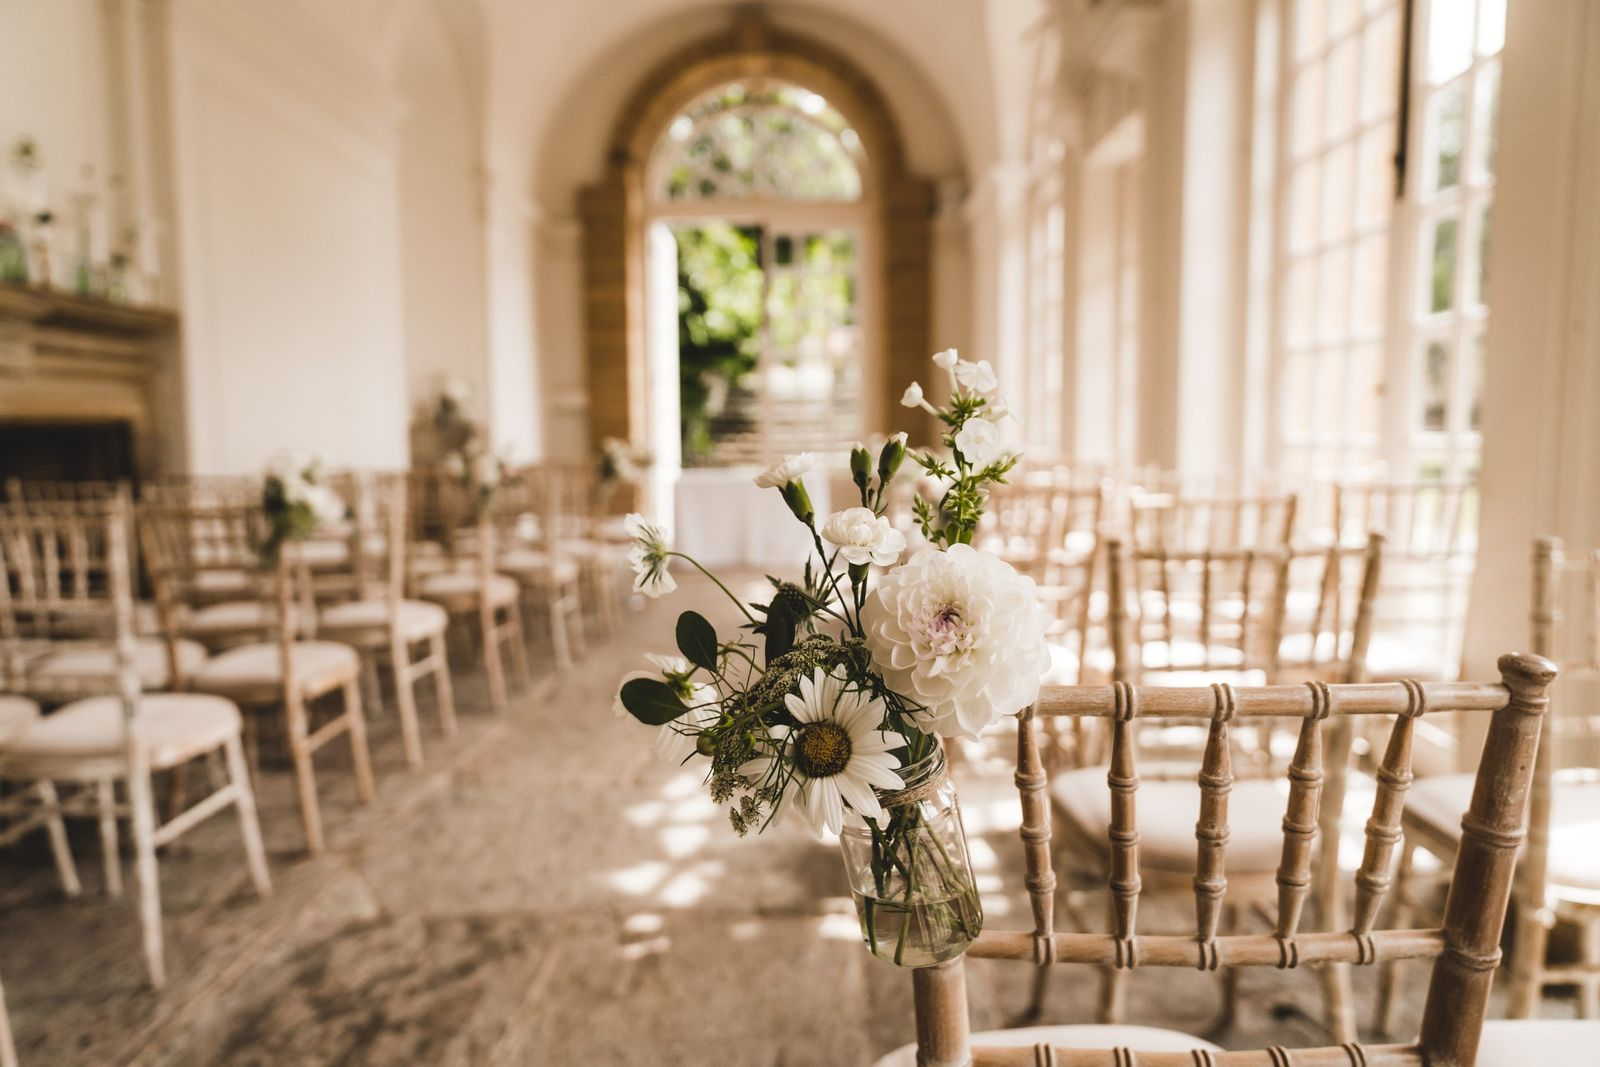 Beautiful Orangery at Hestercombe - one of the most enchanting affordable wedding venues in Somerset